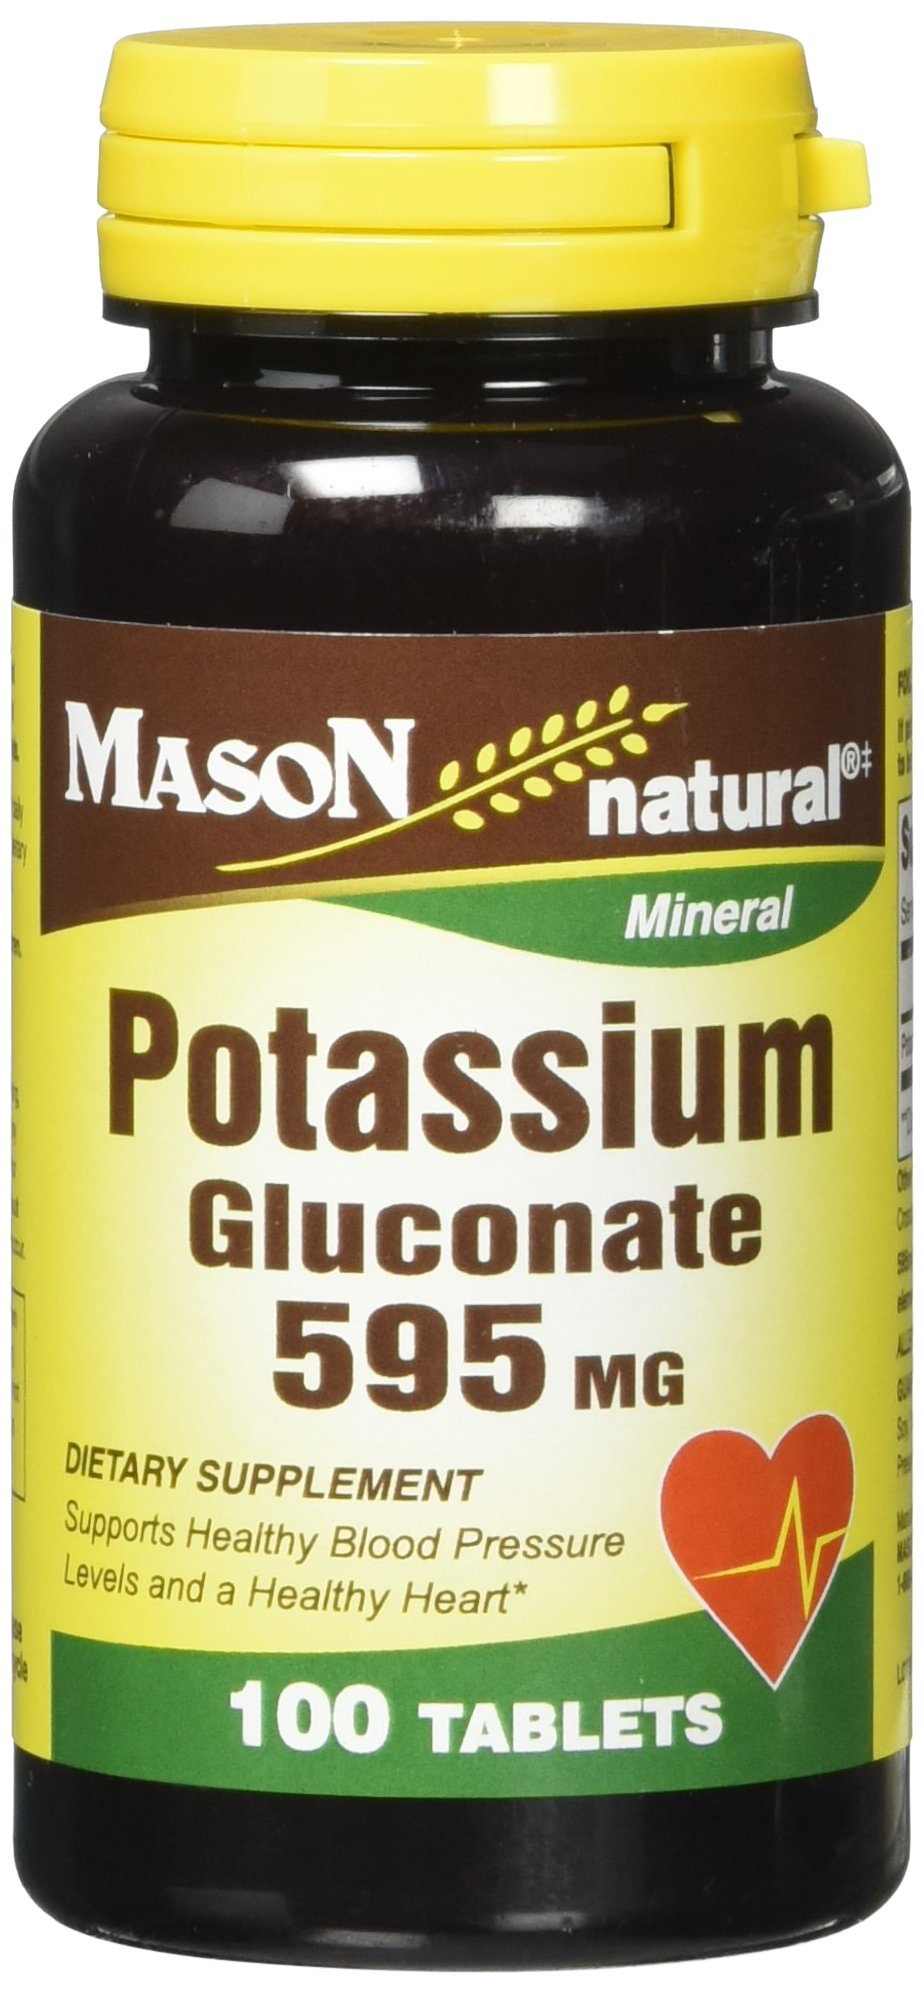 Mason Natural, Potassium Gluconate, 595 Mg Tablets, 100-Count Bottles (Pack of 3), Dietary Supplement Supports Healthy Blood Pressure, Overall Heart Health, Muscle Health, and Organ Health